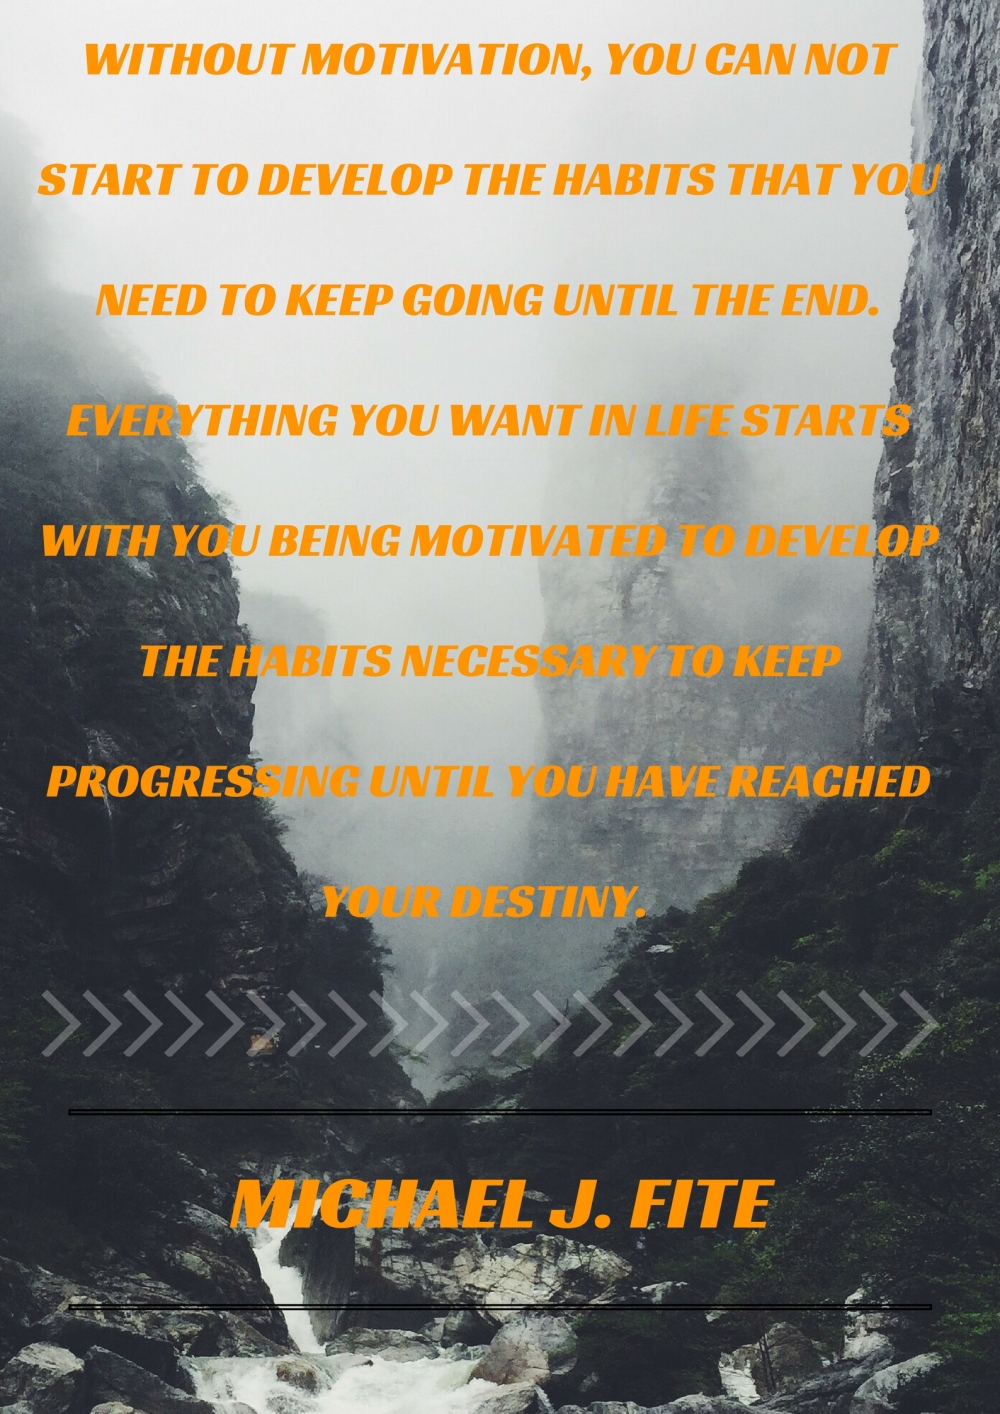 without motivation, you can not start to develop the habits that you need to keep going until the end. Everything you want in life starts with you being motivated to develop the habits n